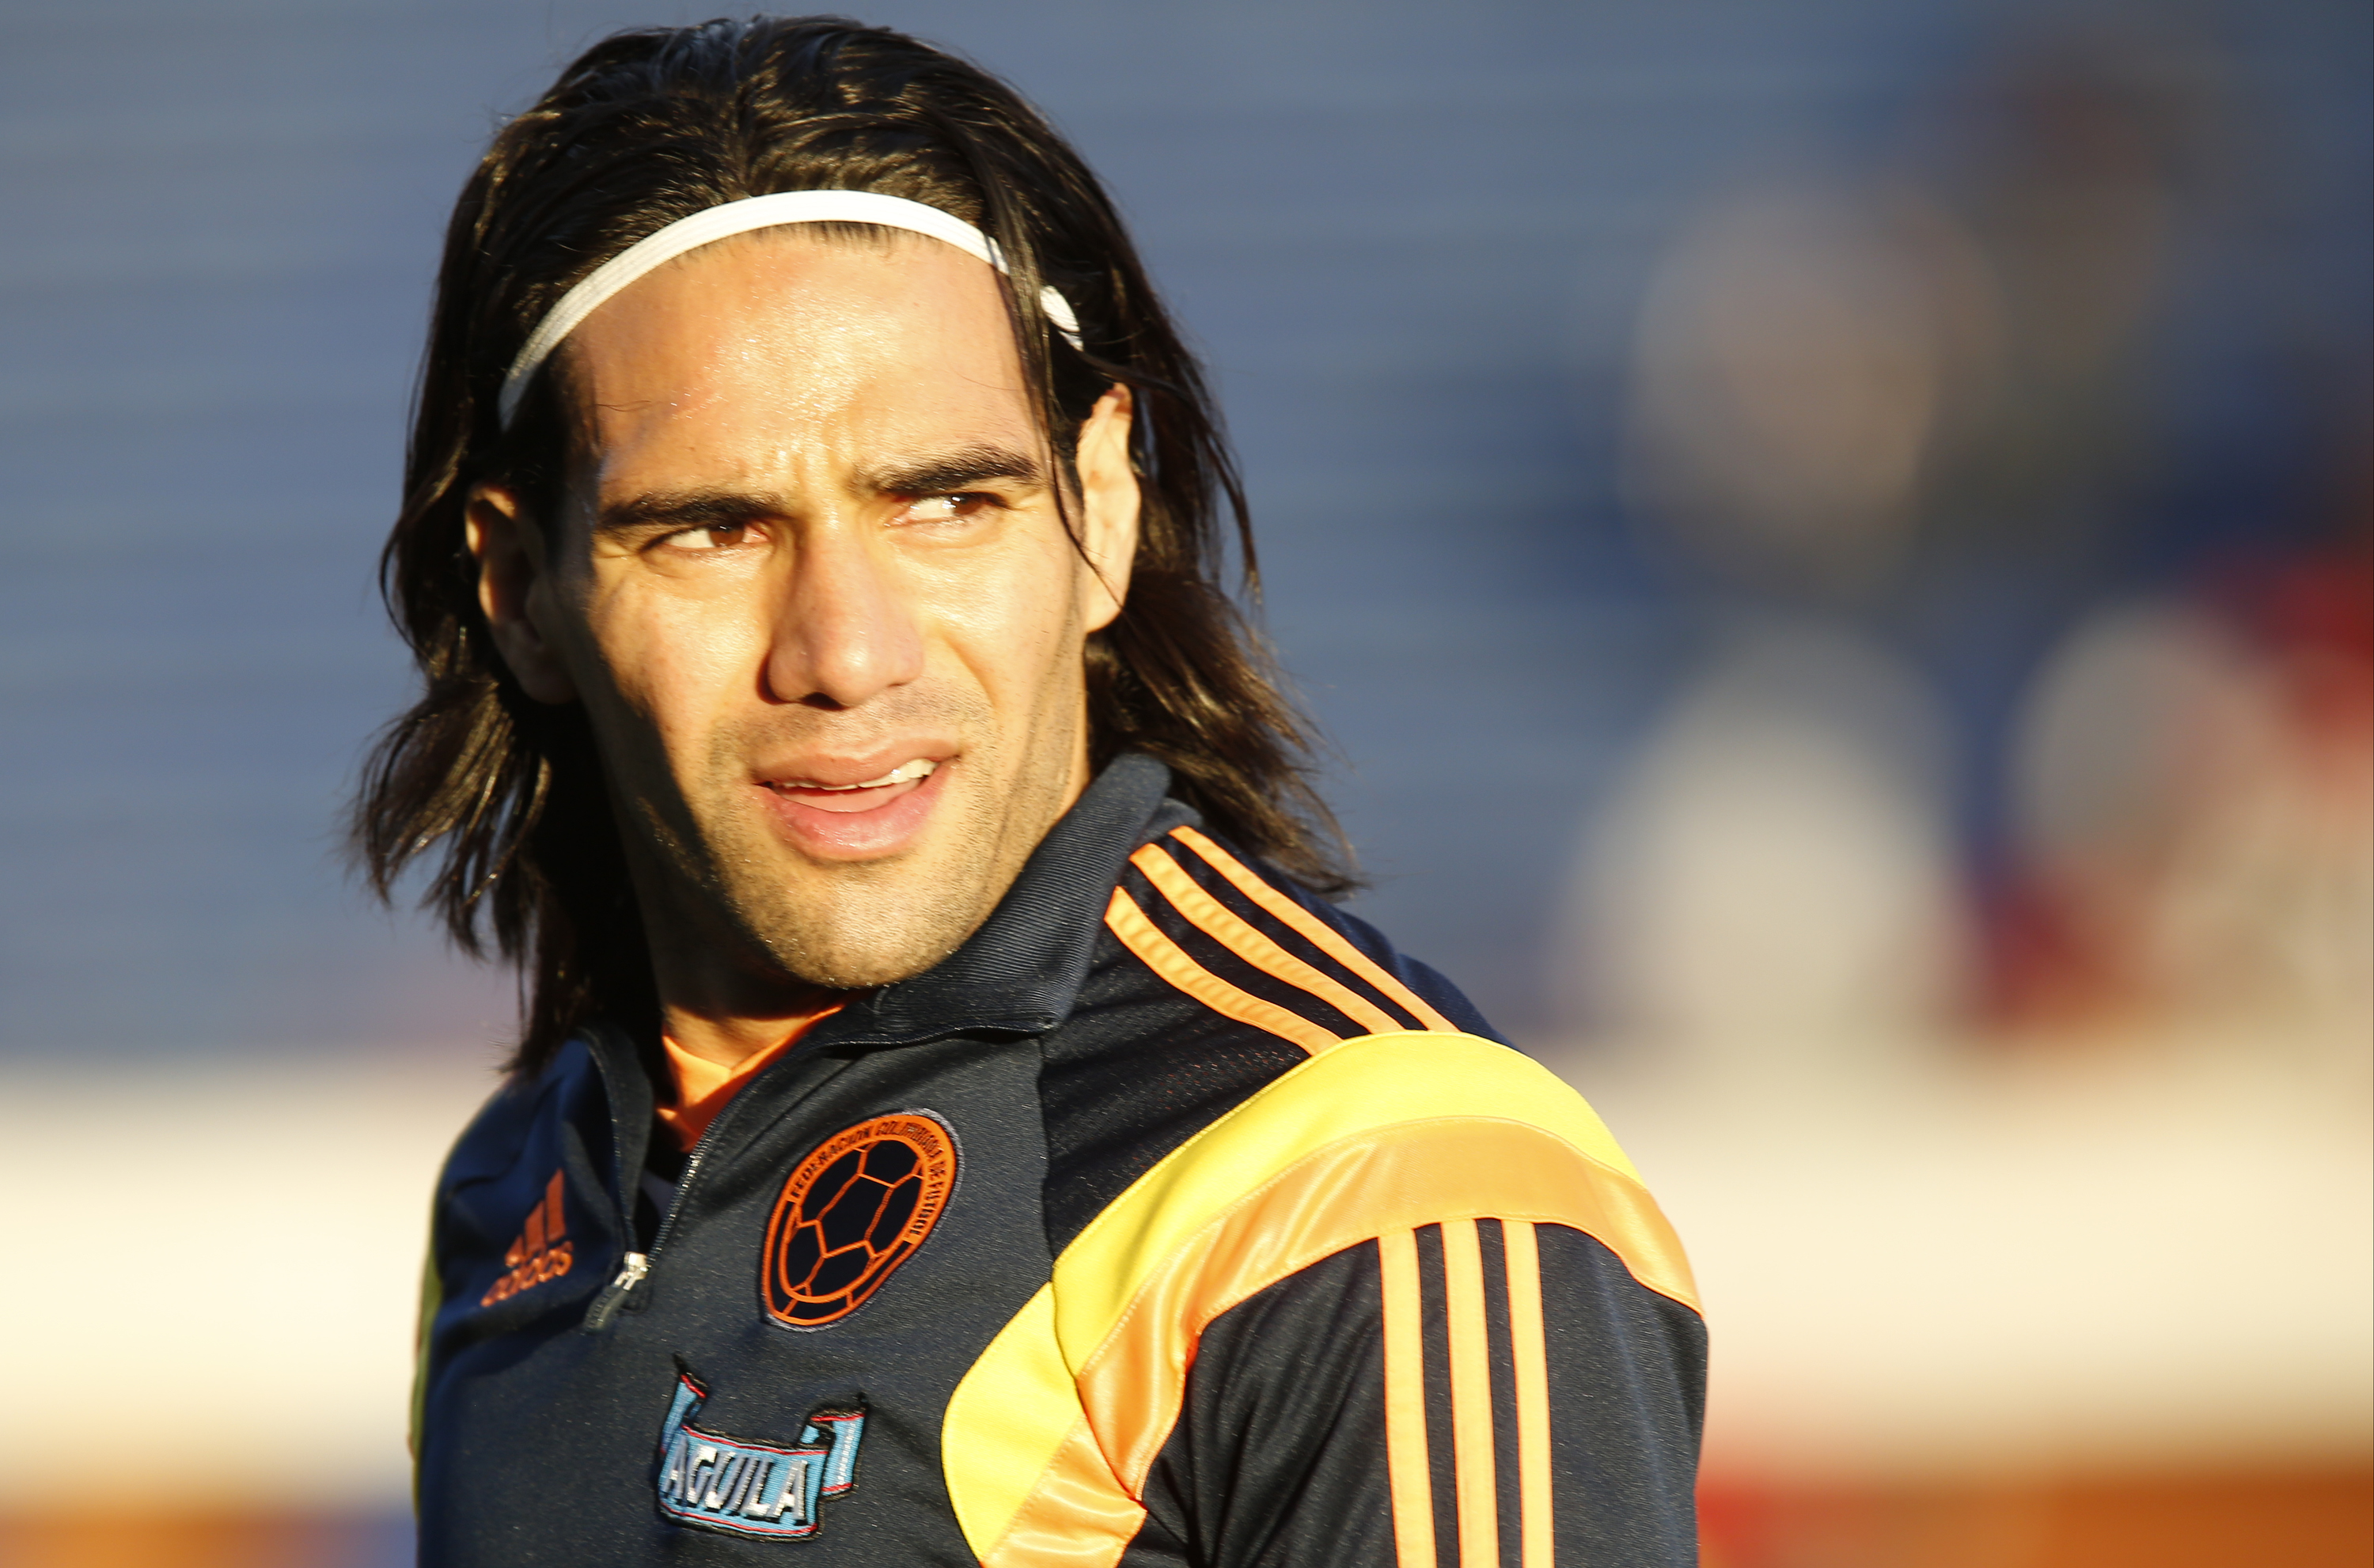 Chelsea's Radamel Falcao left out of Colombia's squad for Copa America 2016